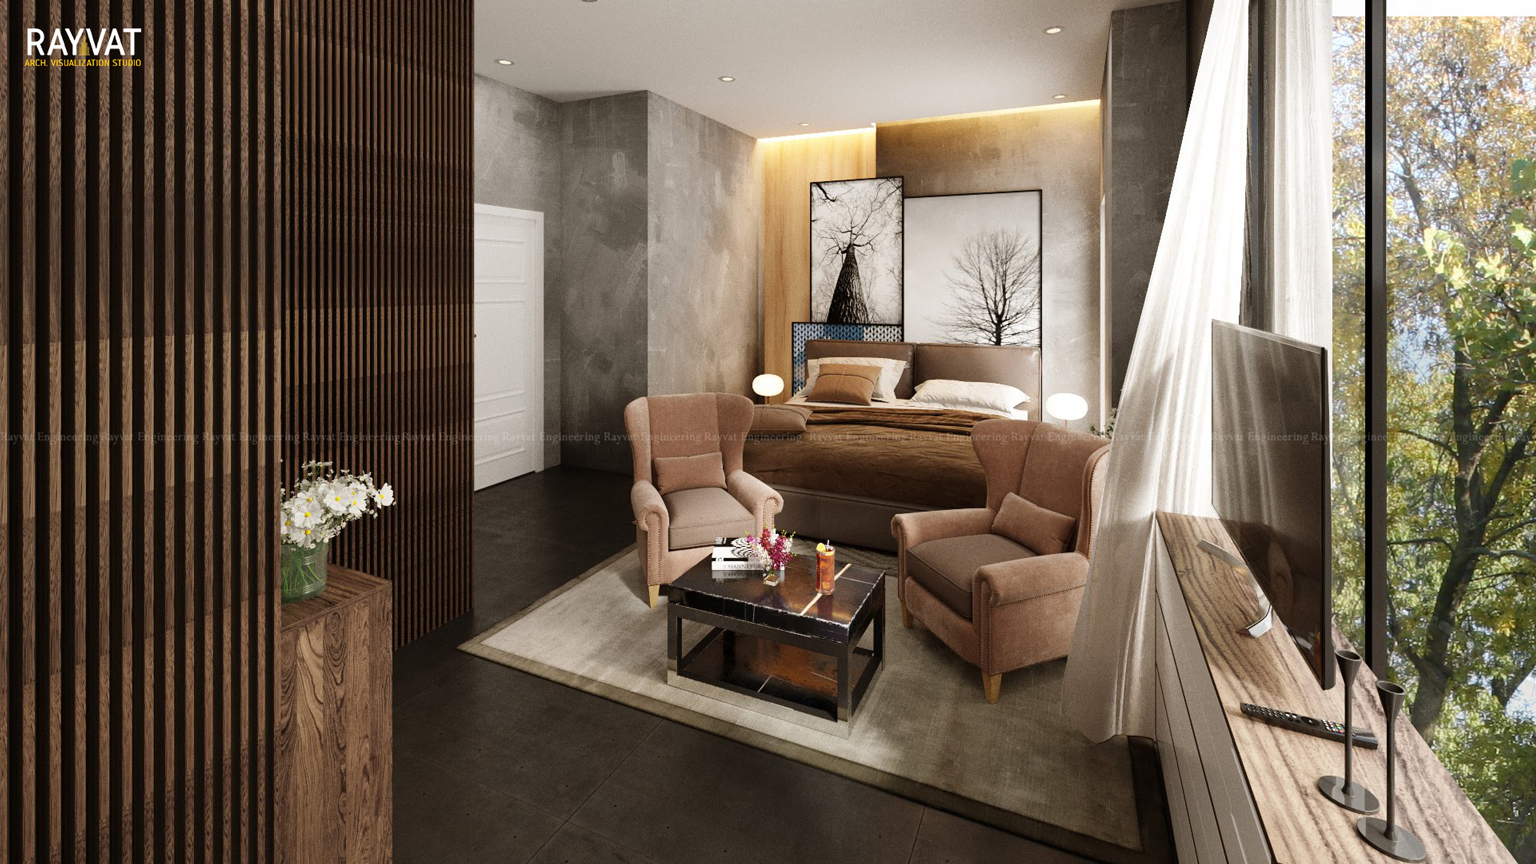 3D Rendering Services Beverly Hills, California